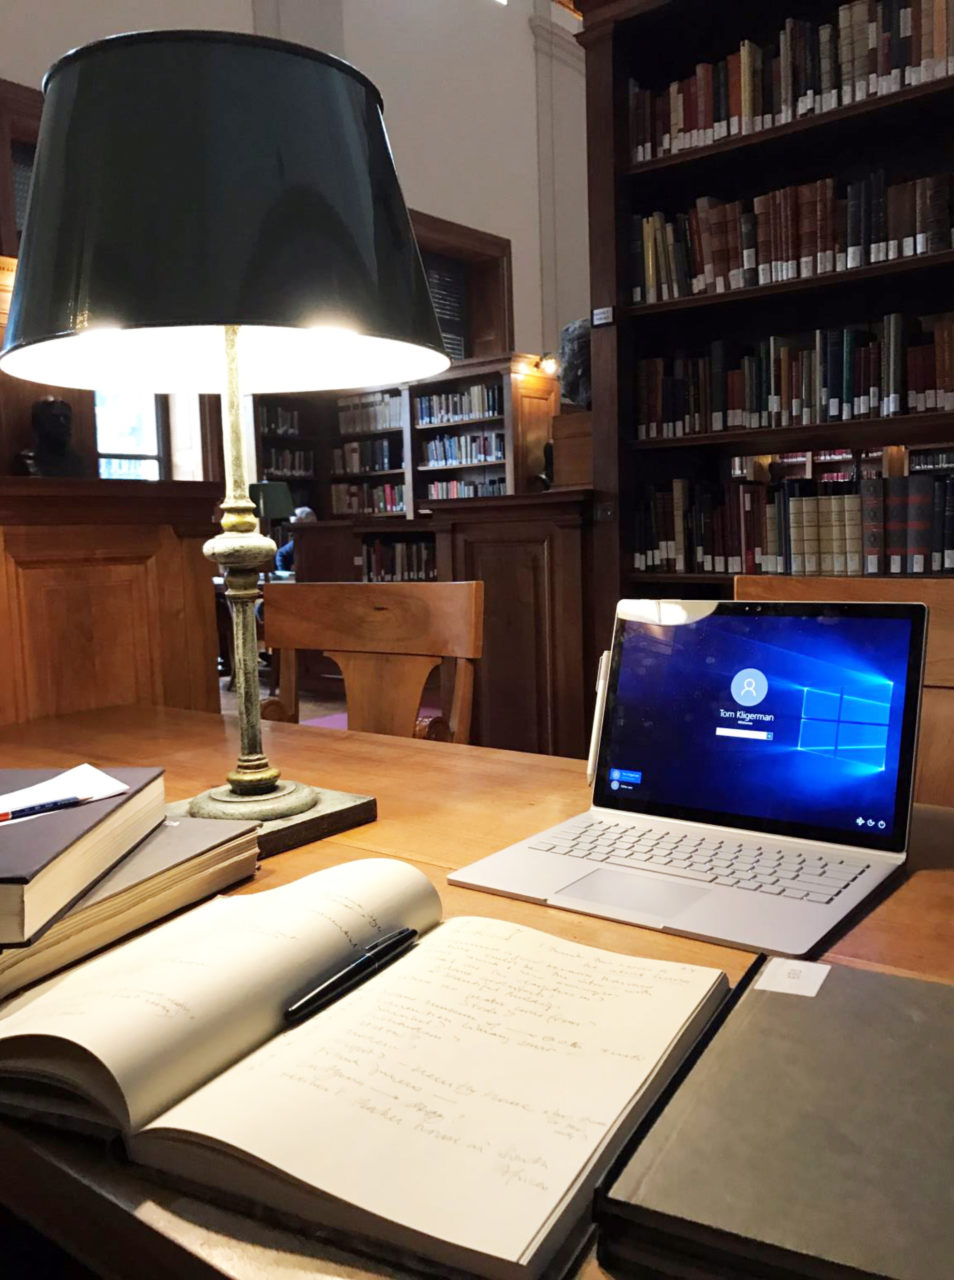 The library in the American Academy in Rome